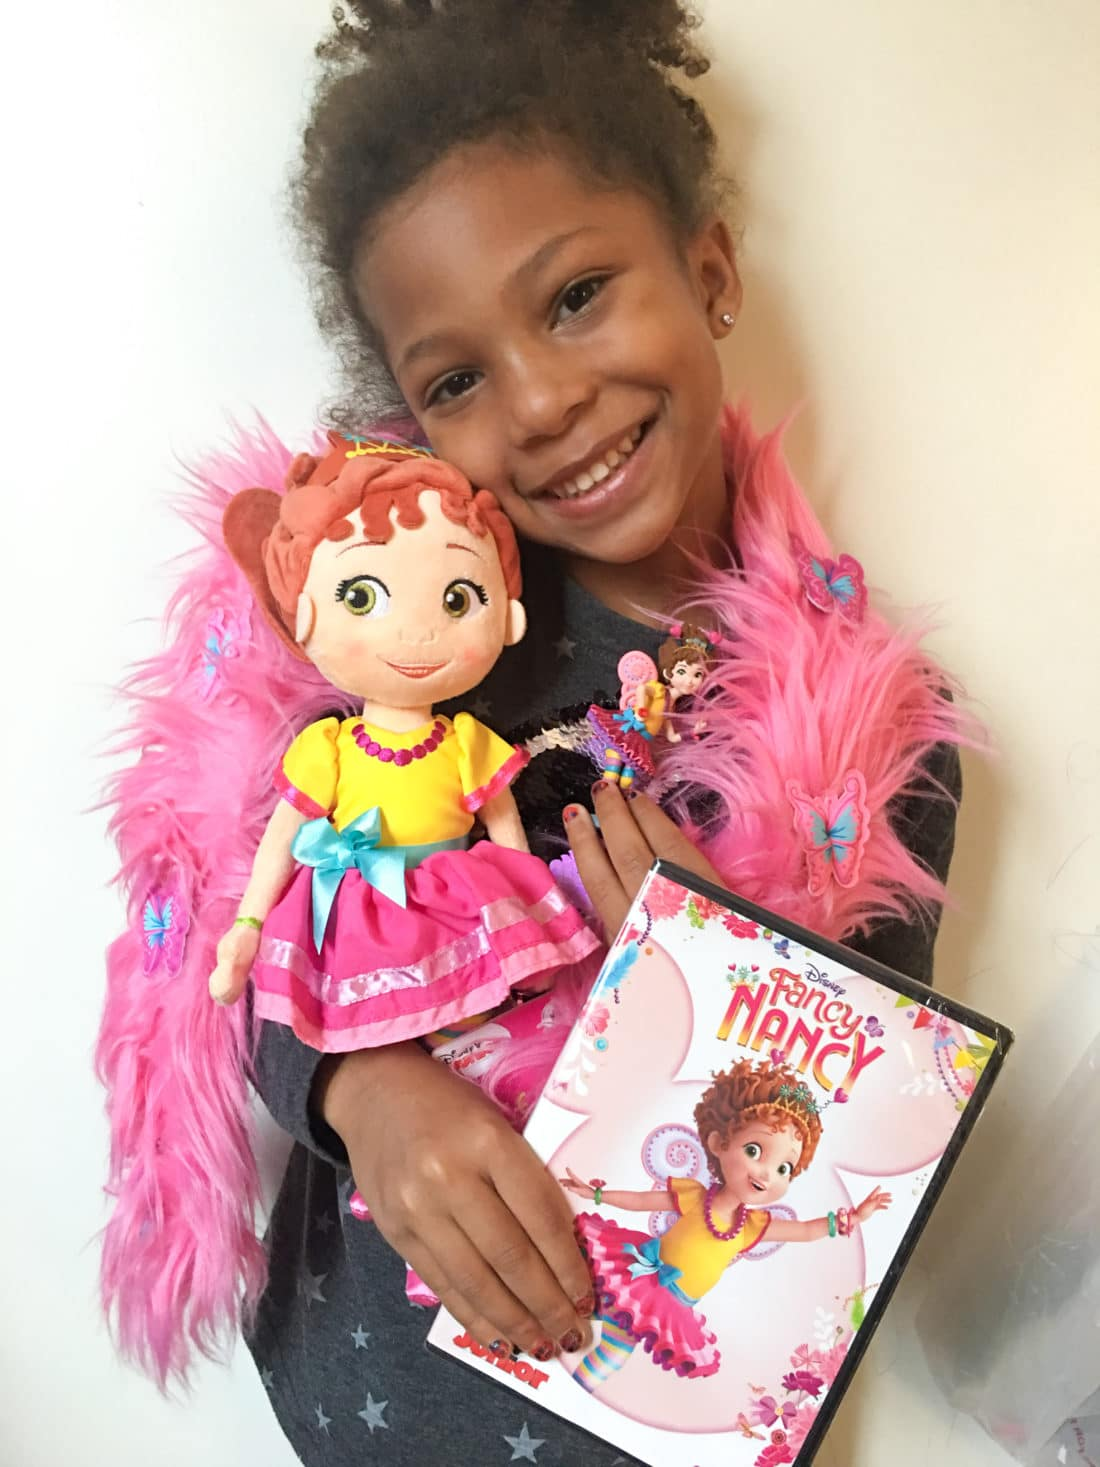 """Esuun Fancy Nancy DVD Doll Figure. Grab some glitter, add a dash of """"ooh la la,"""" sprinkle in original songs and Voilà! Get set to pour on the fun with Fancy Nancy in her newest DVD from Disney Junior."""